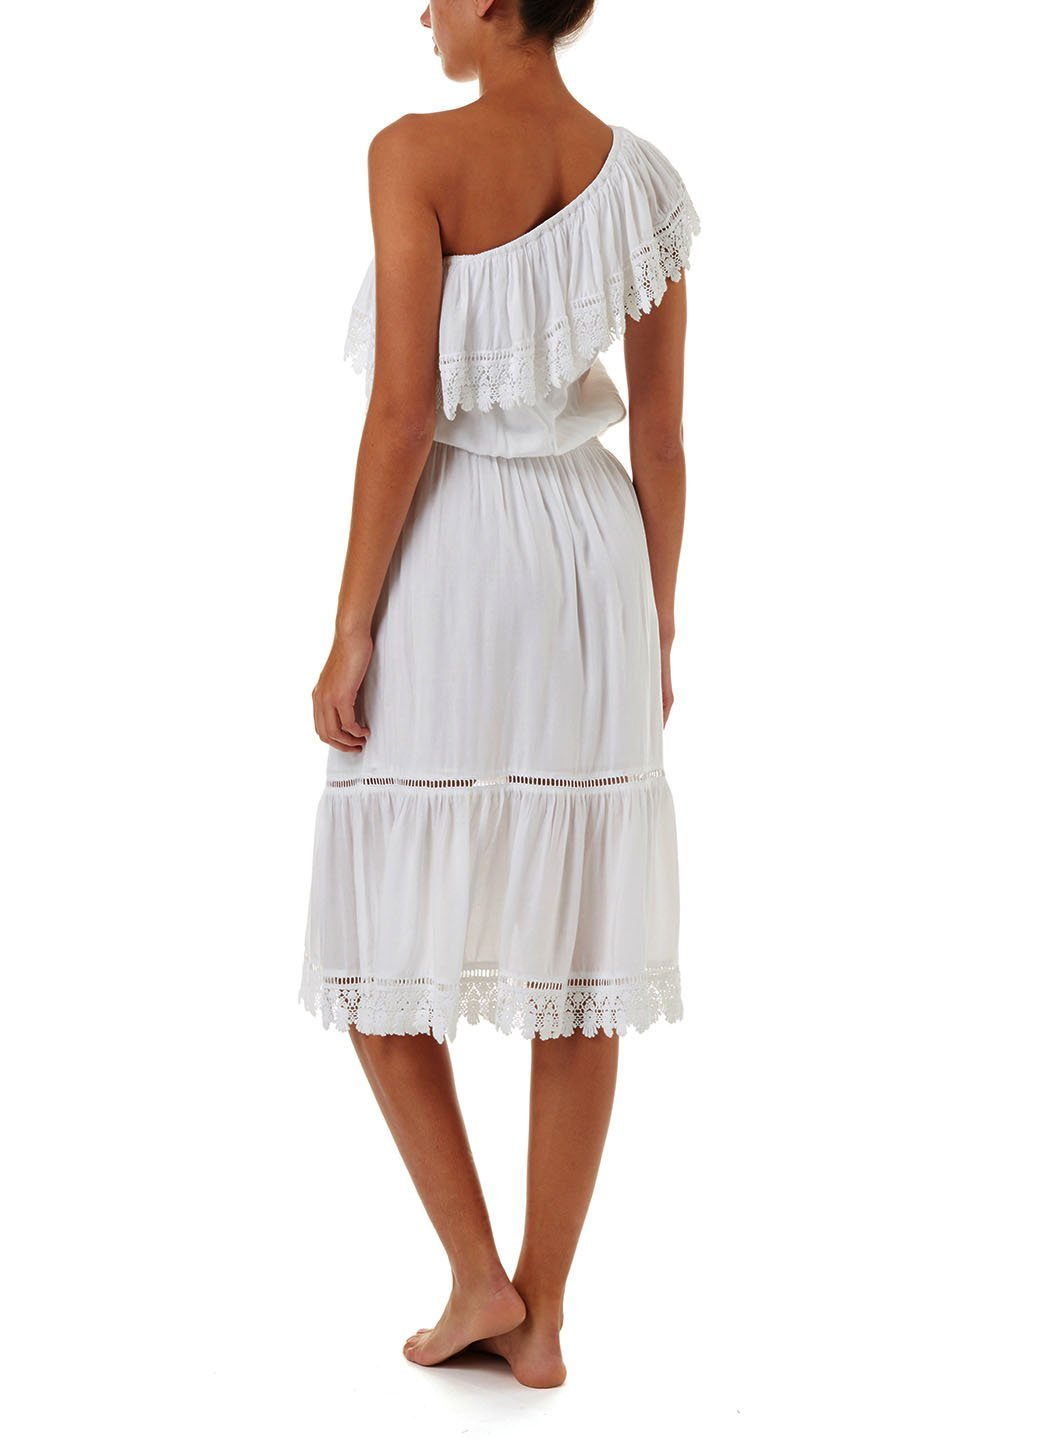 jo white oneshoulder embroidered frill midi dress 201 B